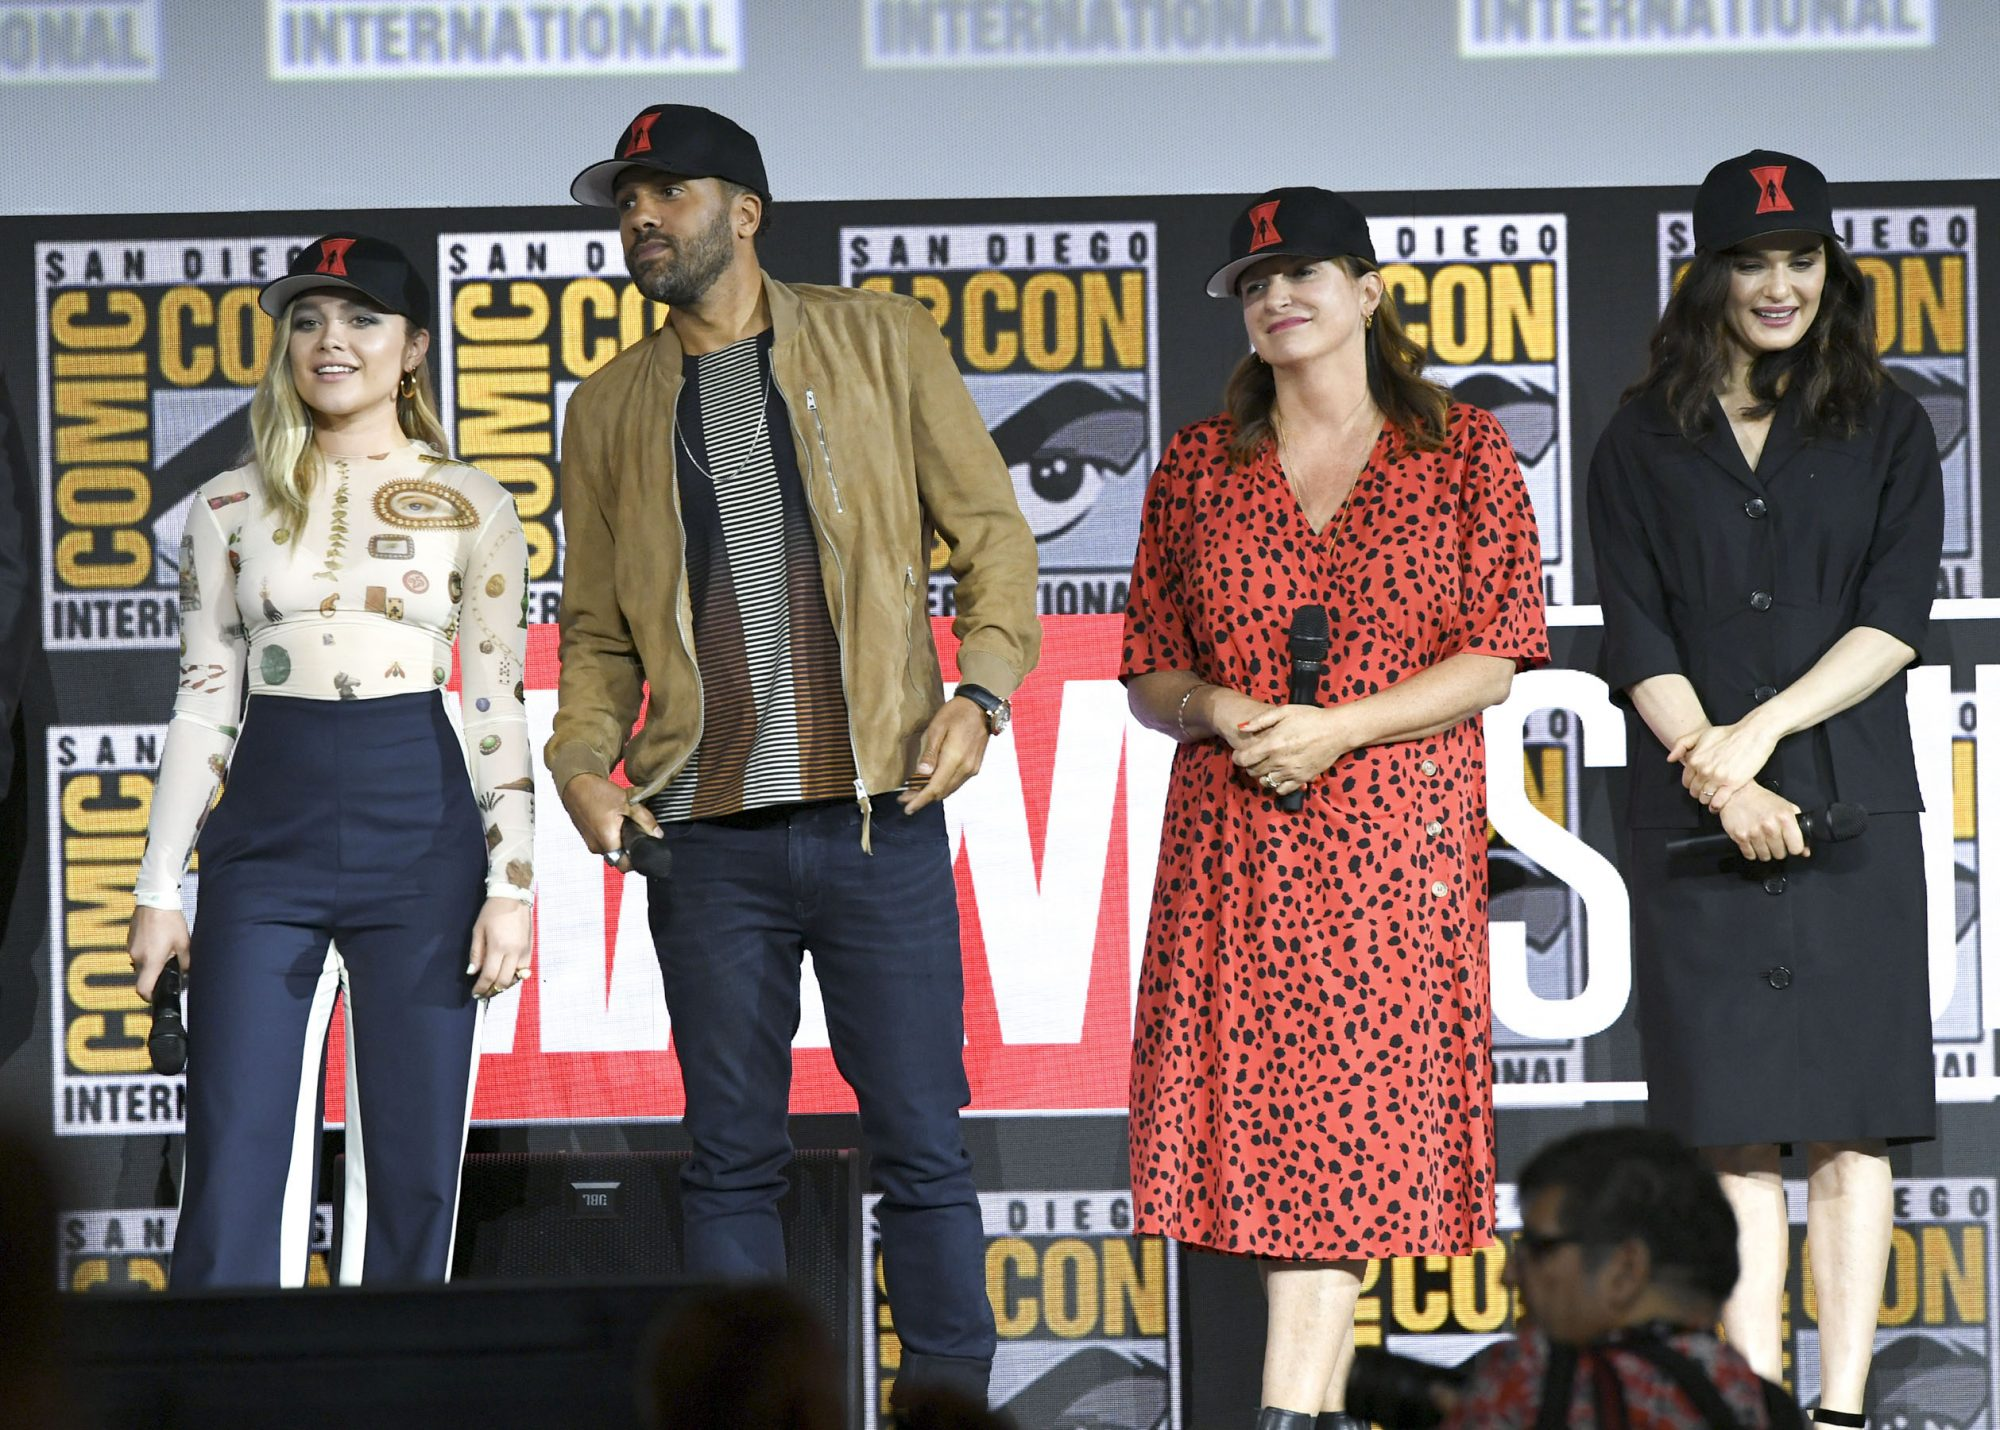 SAN DIEGO, CALIFORNIA - JULY 20: (L-R) Florence Pugh, O. T. Fagbenle, Cate Shortland and Rachel Weisz speak at the Marvel Studios Panel during 2019 Comic-Con International at San Diego Convention Center on July 20, 2019 in San Diego, California. (Photo by Kevin Winter/Getty Images)